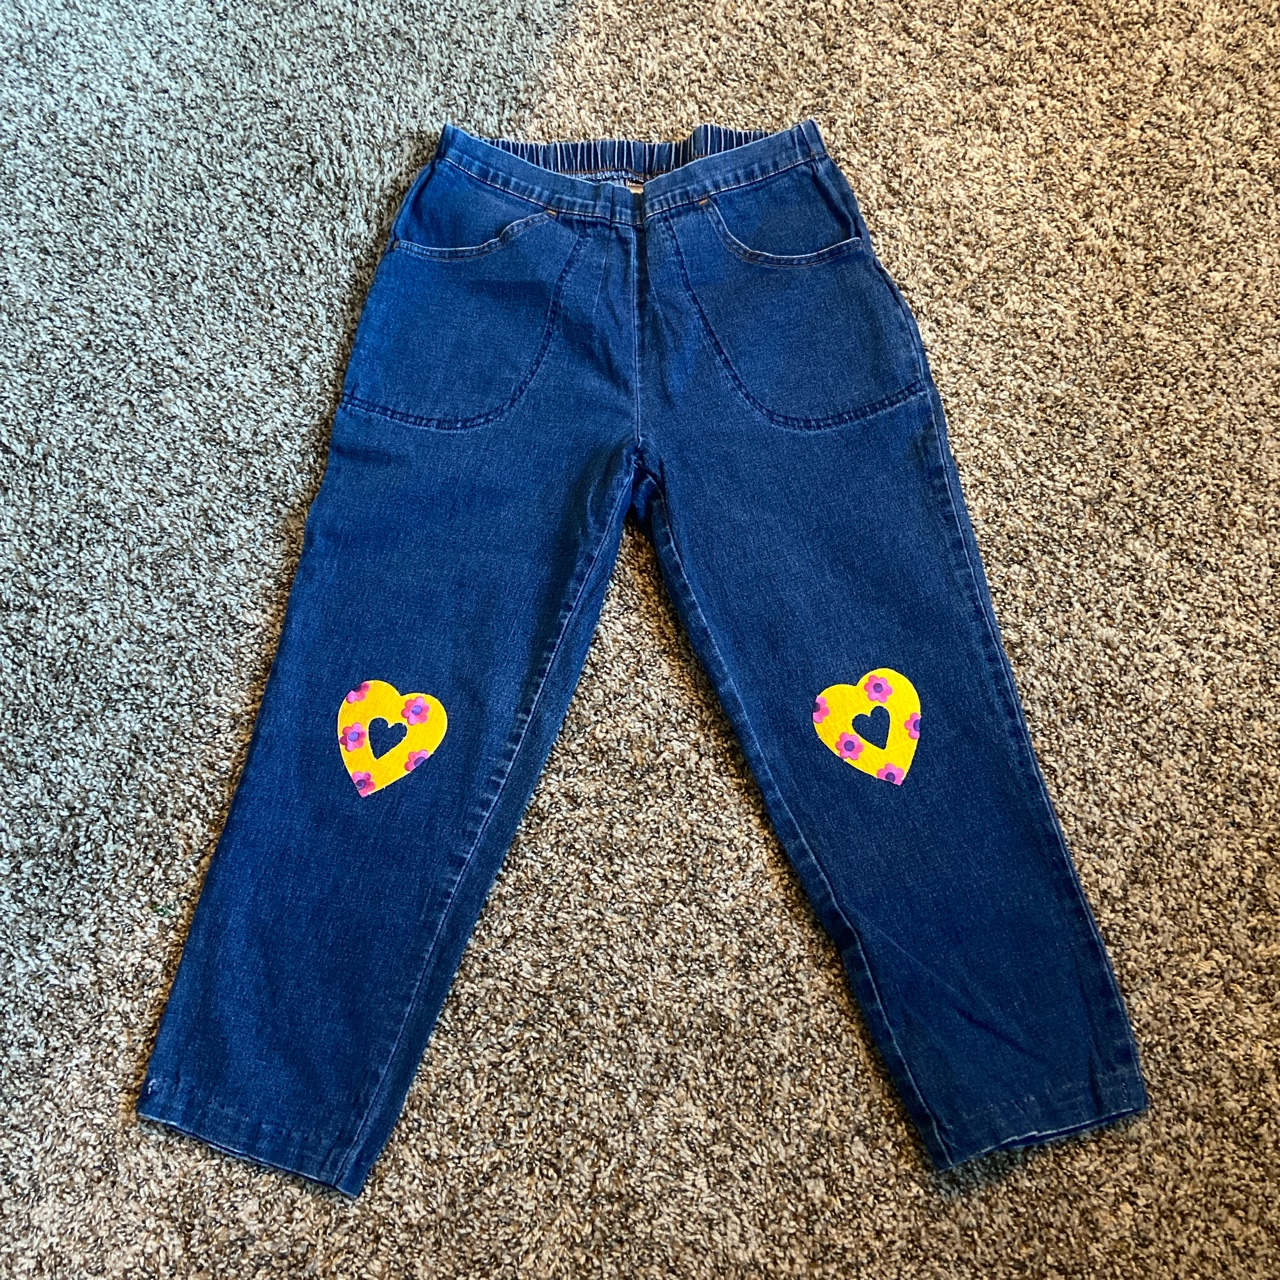 Product Image 1 - HEART PATCHWORK MOM JEANS 💛💗🌼💗🌼💛  Size: